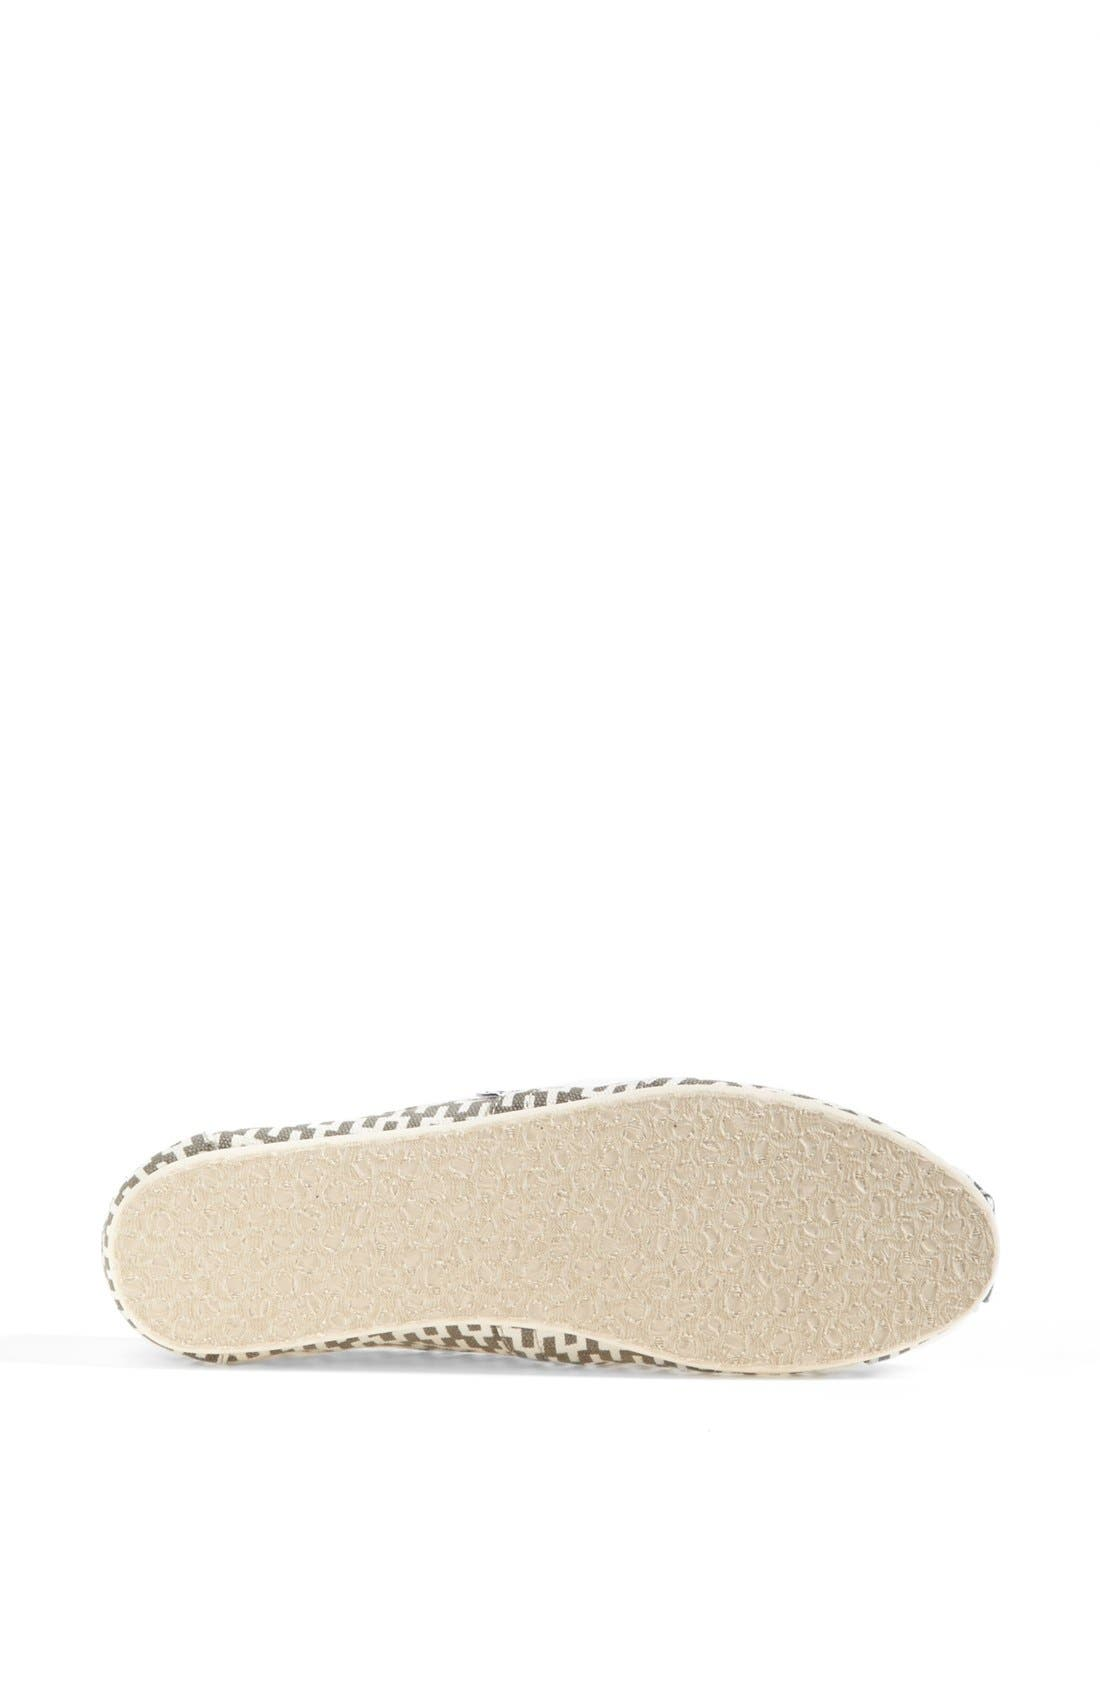 TOMS, 'Classic - Jonathan Adler' Slip-On, Alternate thumbnail 2, color, 020